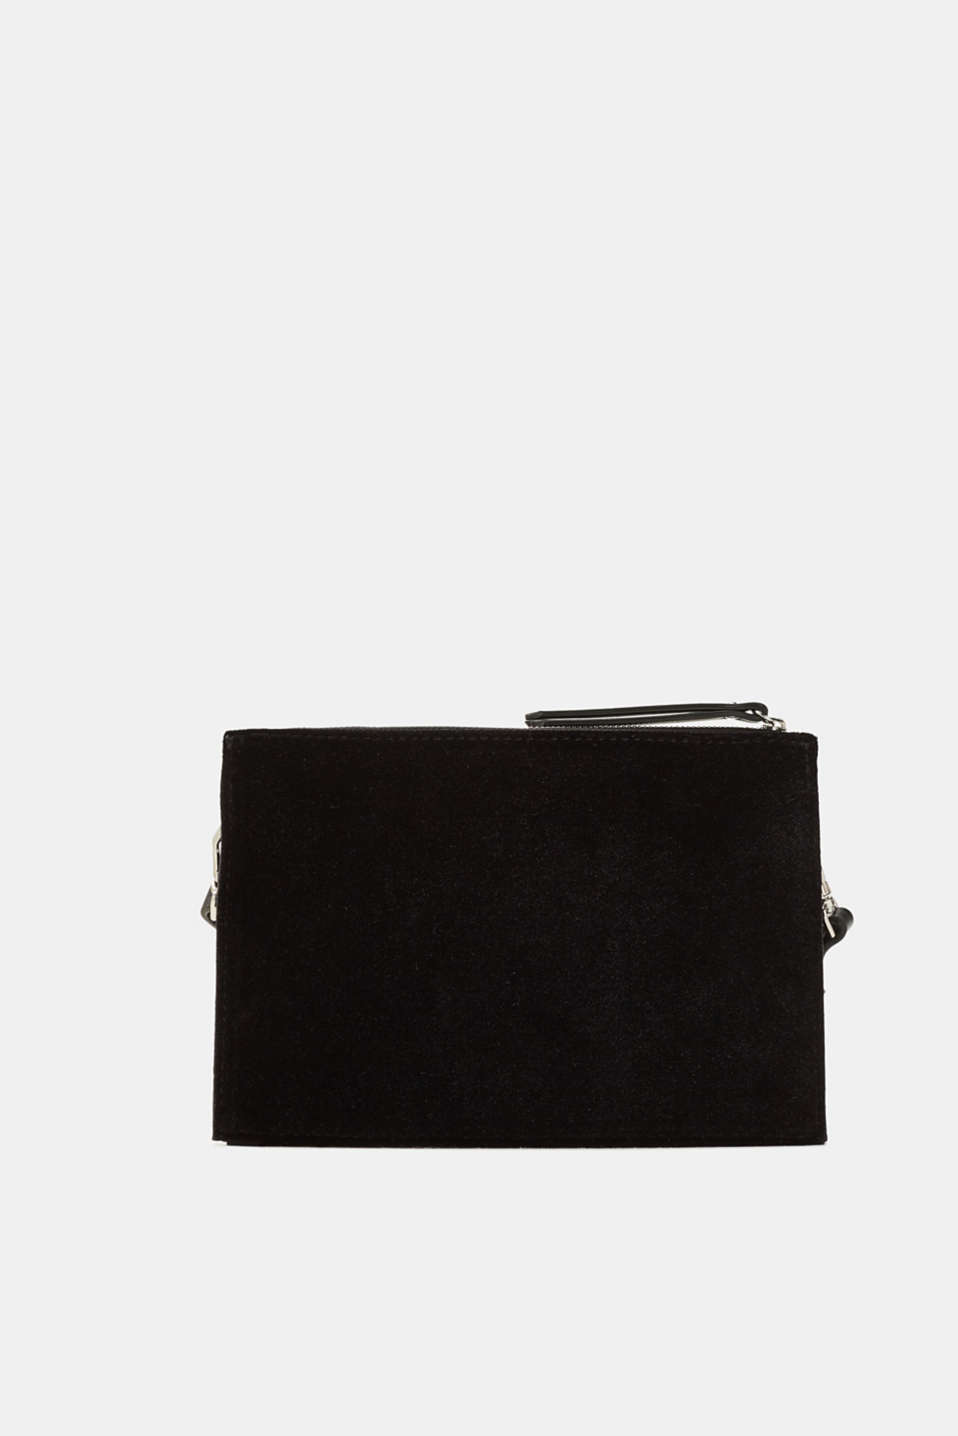 edc - Flat shoulder bag made of velvet